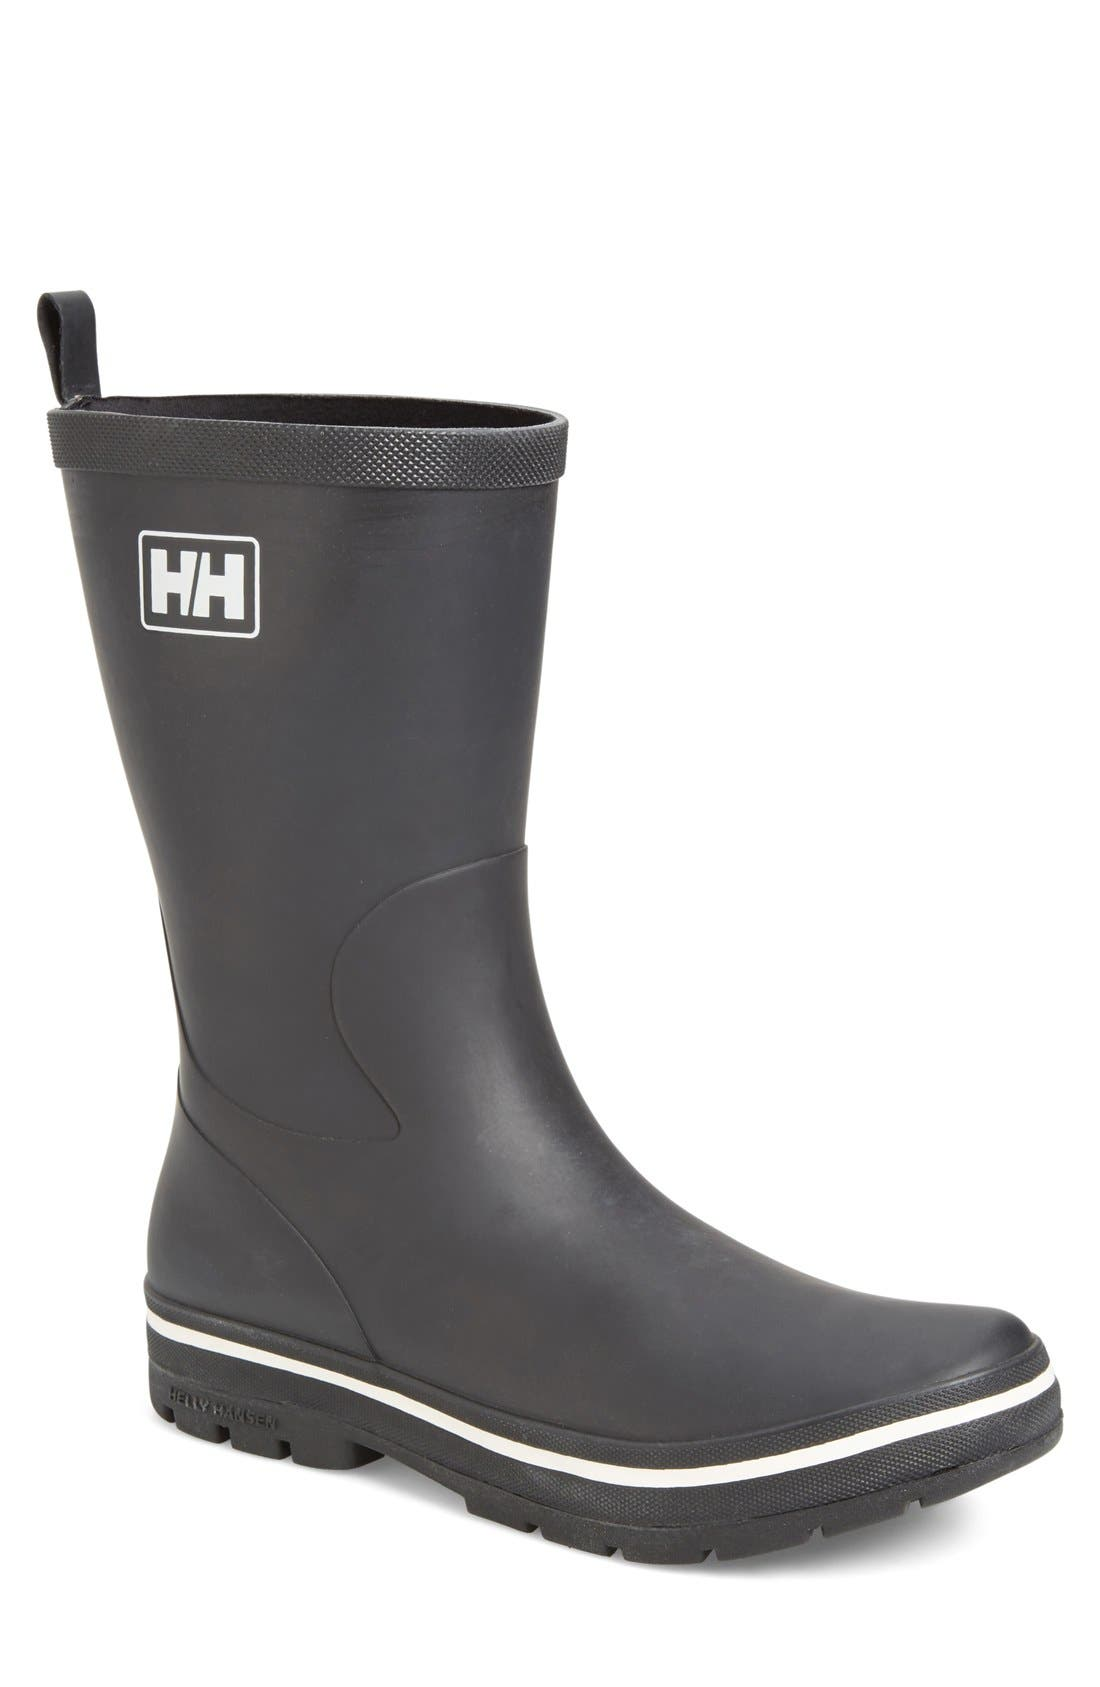 'Midsund 2' Rain Boot,                             Main thumbnail 1, color,                             002